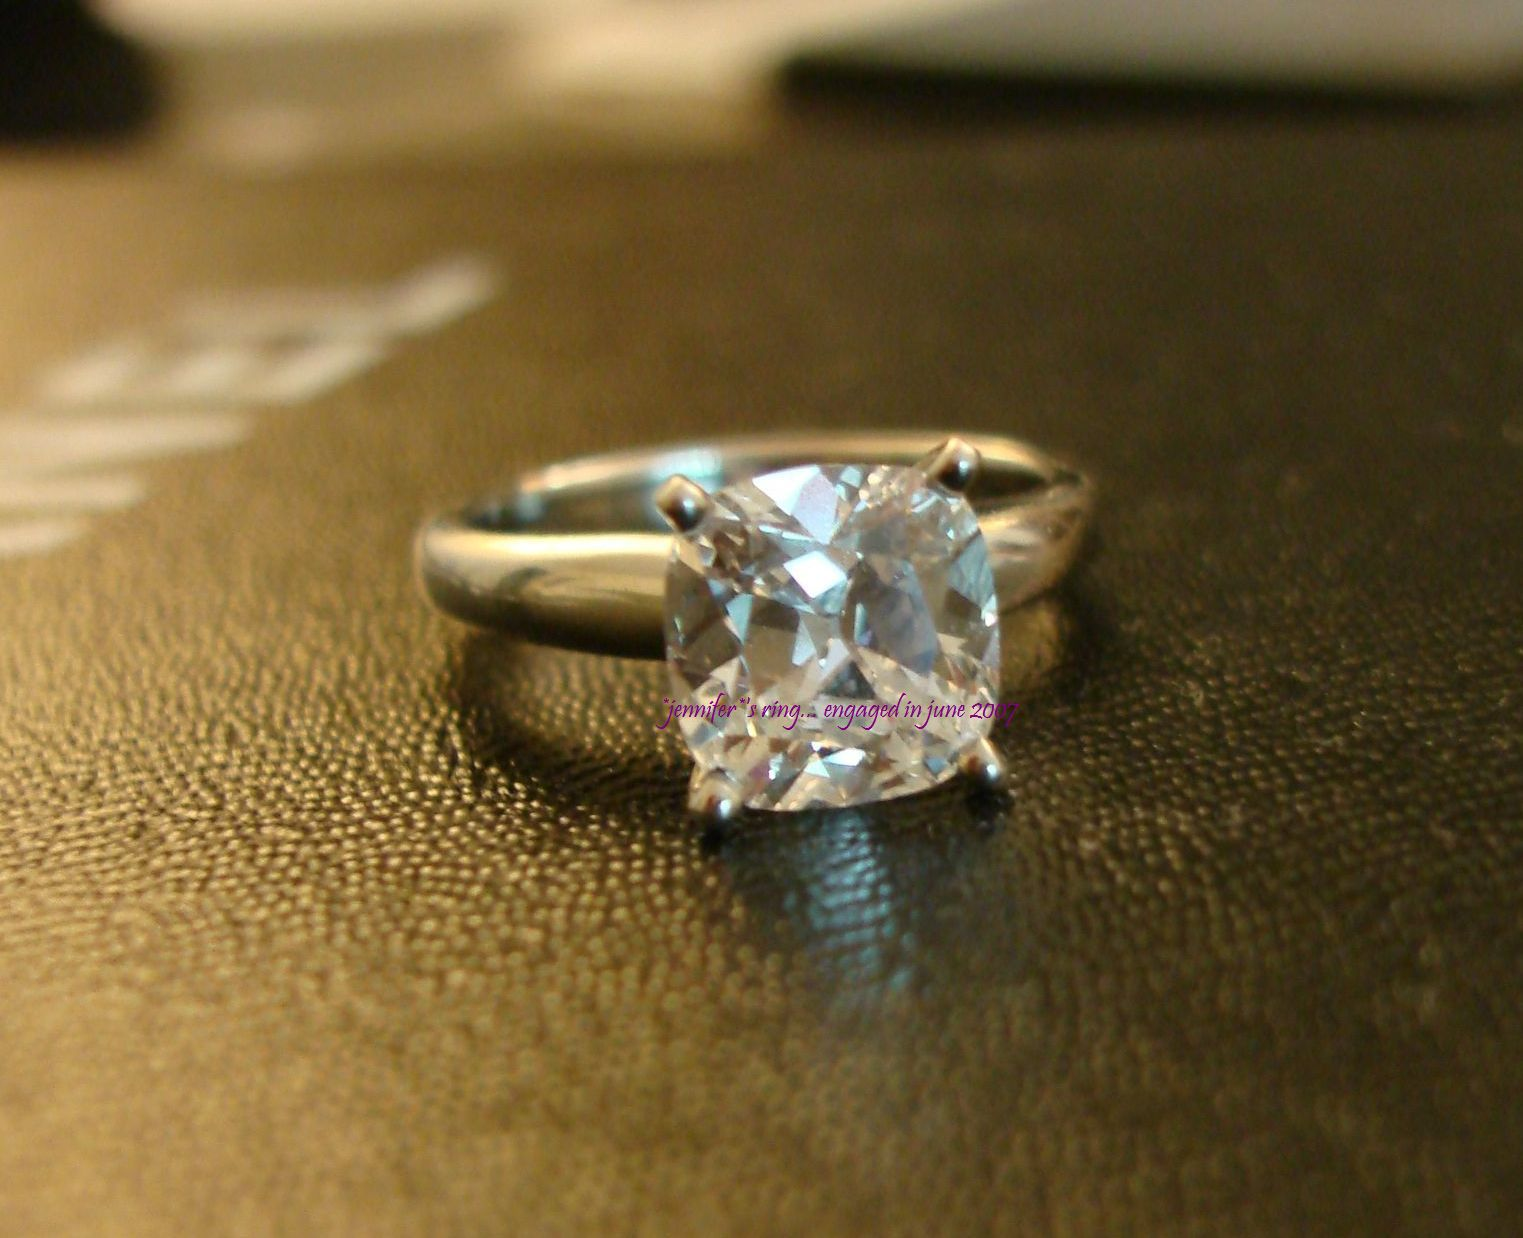 3 Carat Diamond Ring In Wedding And Engagement Rings Ebay